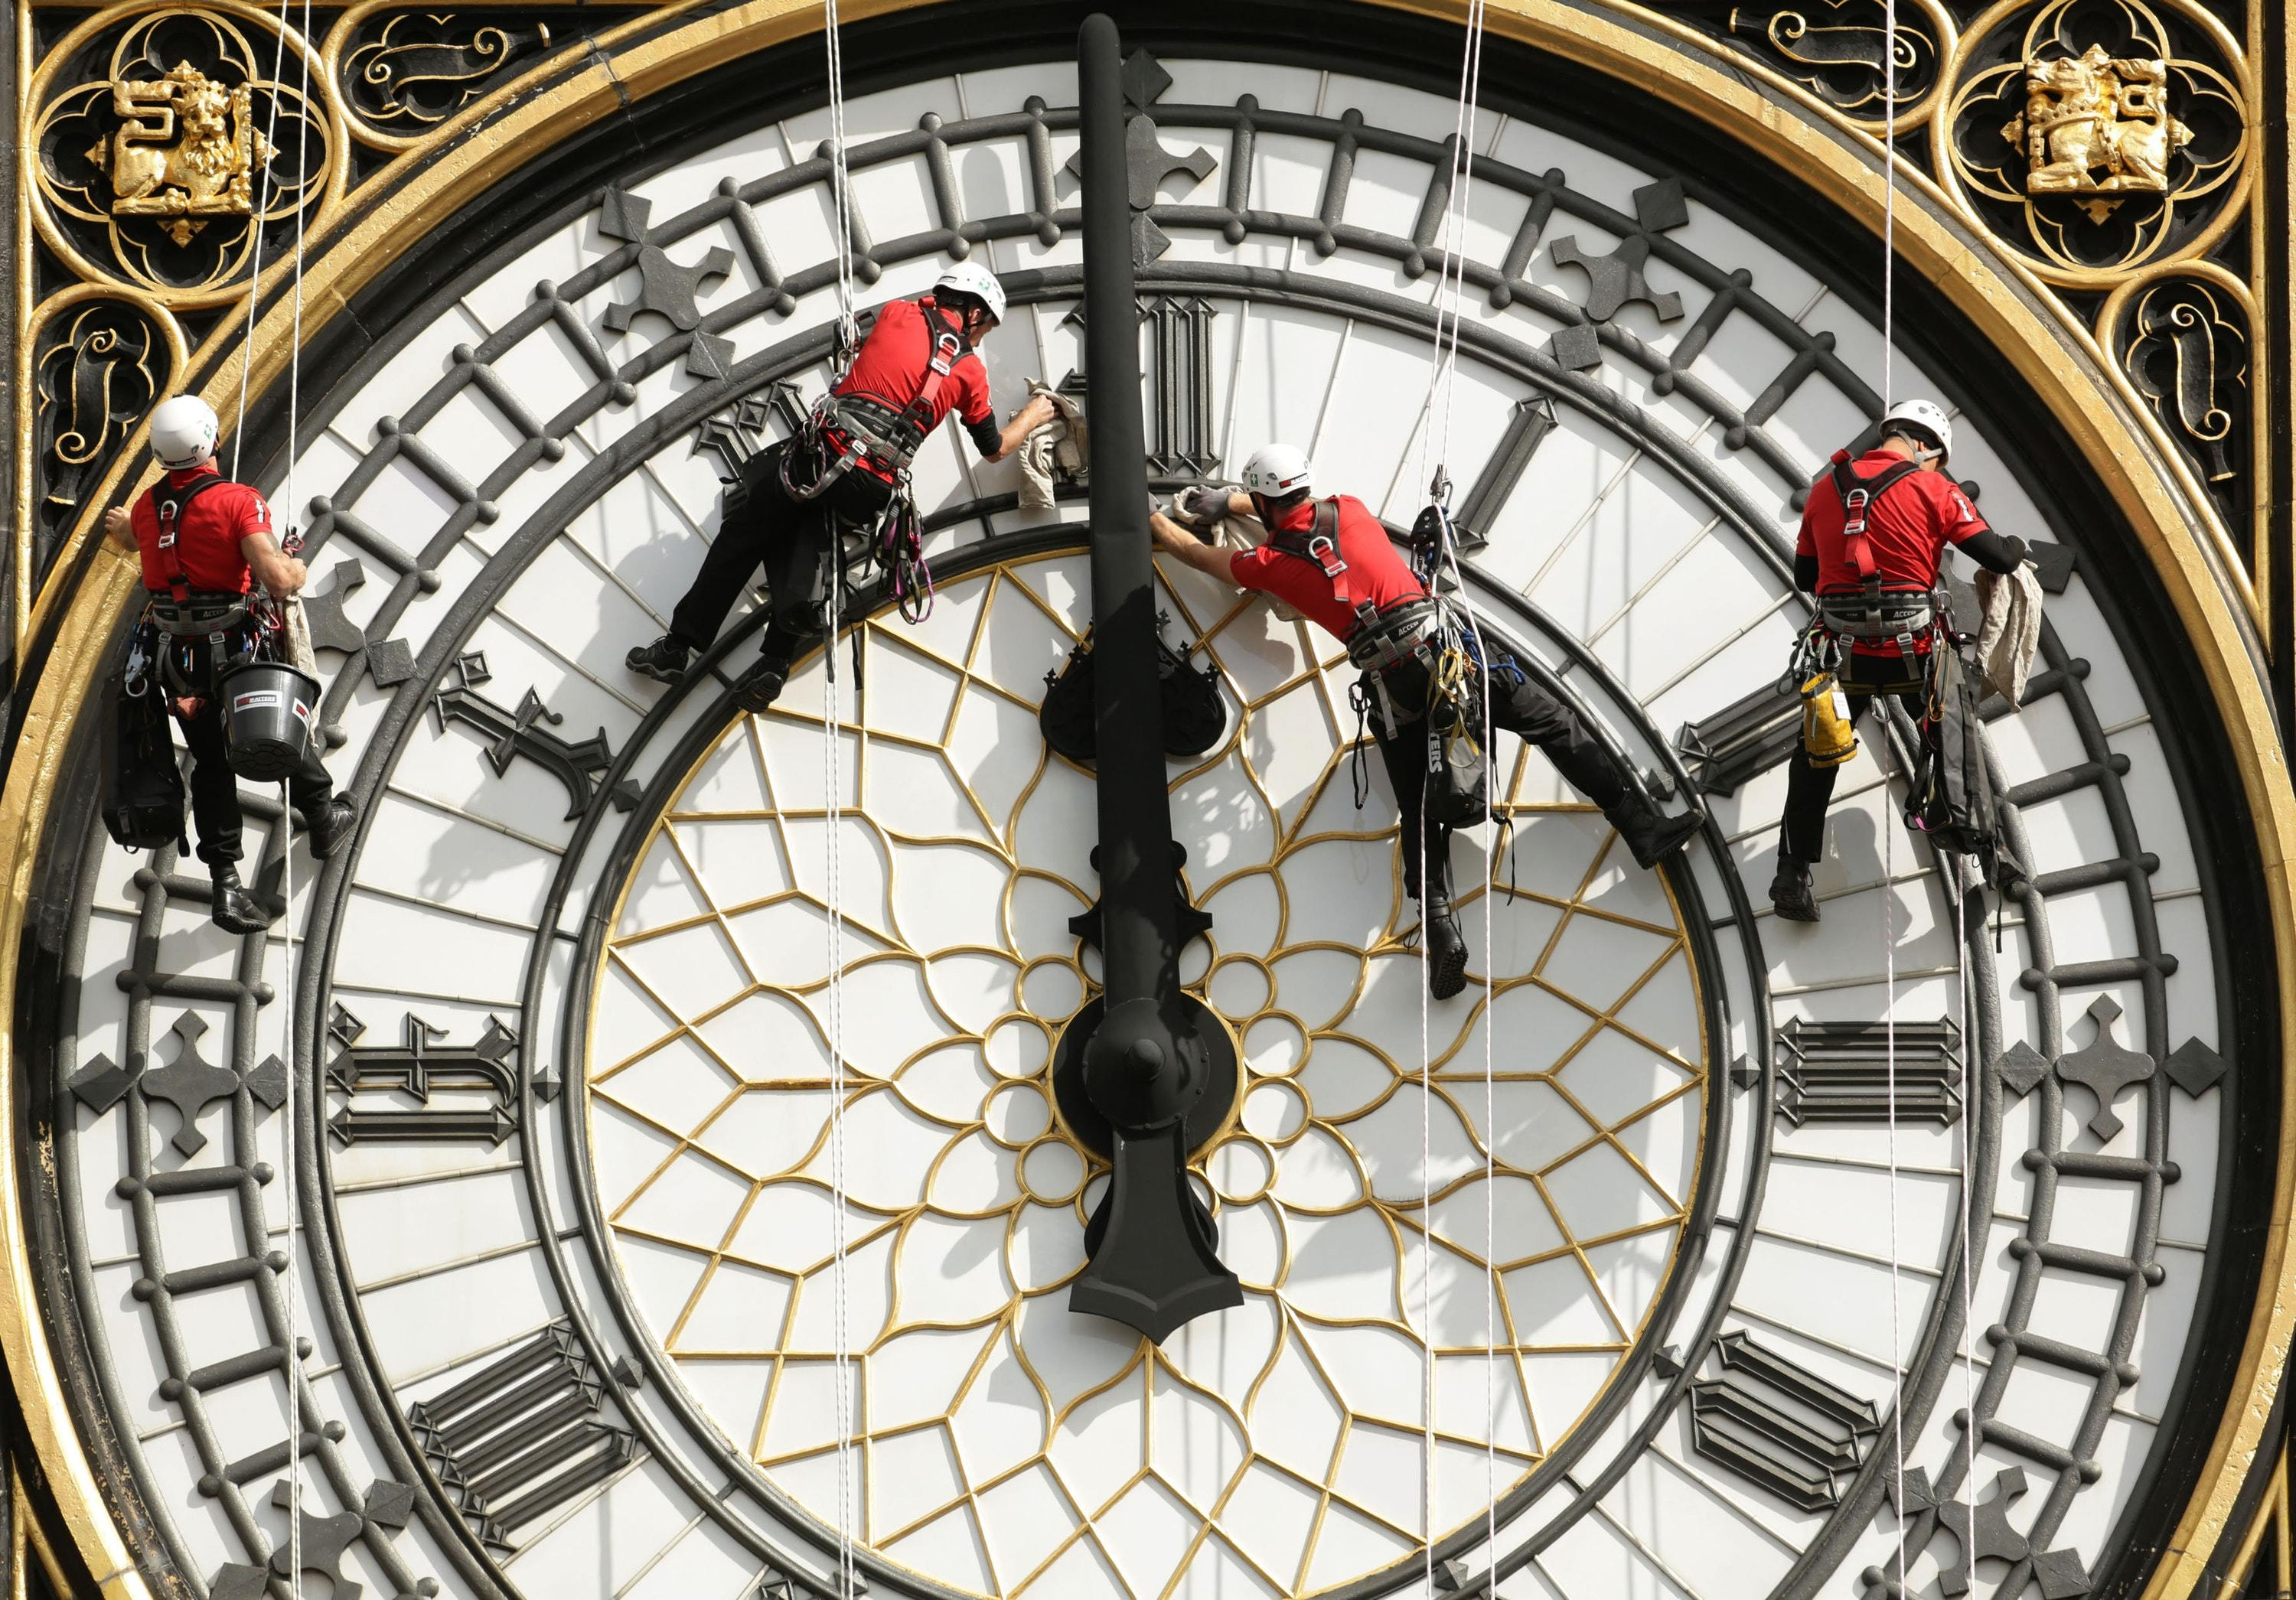 The clocks go back on Sunday October 29th (Yui Mok/PA)